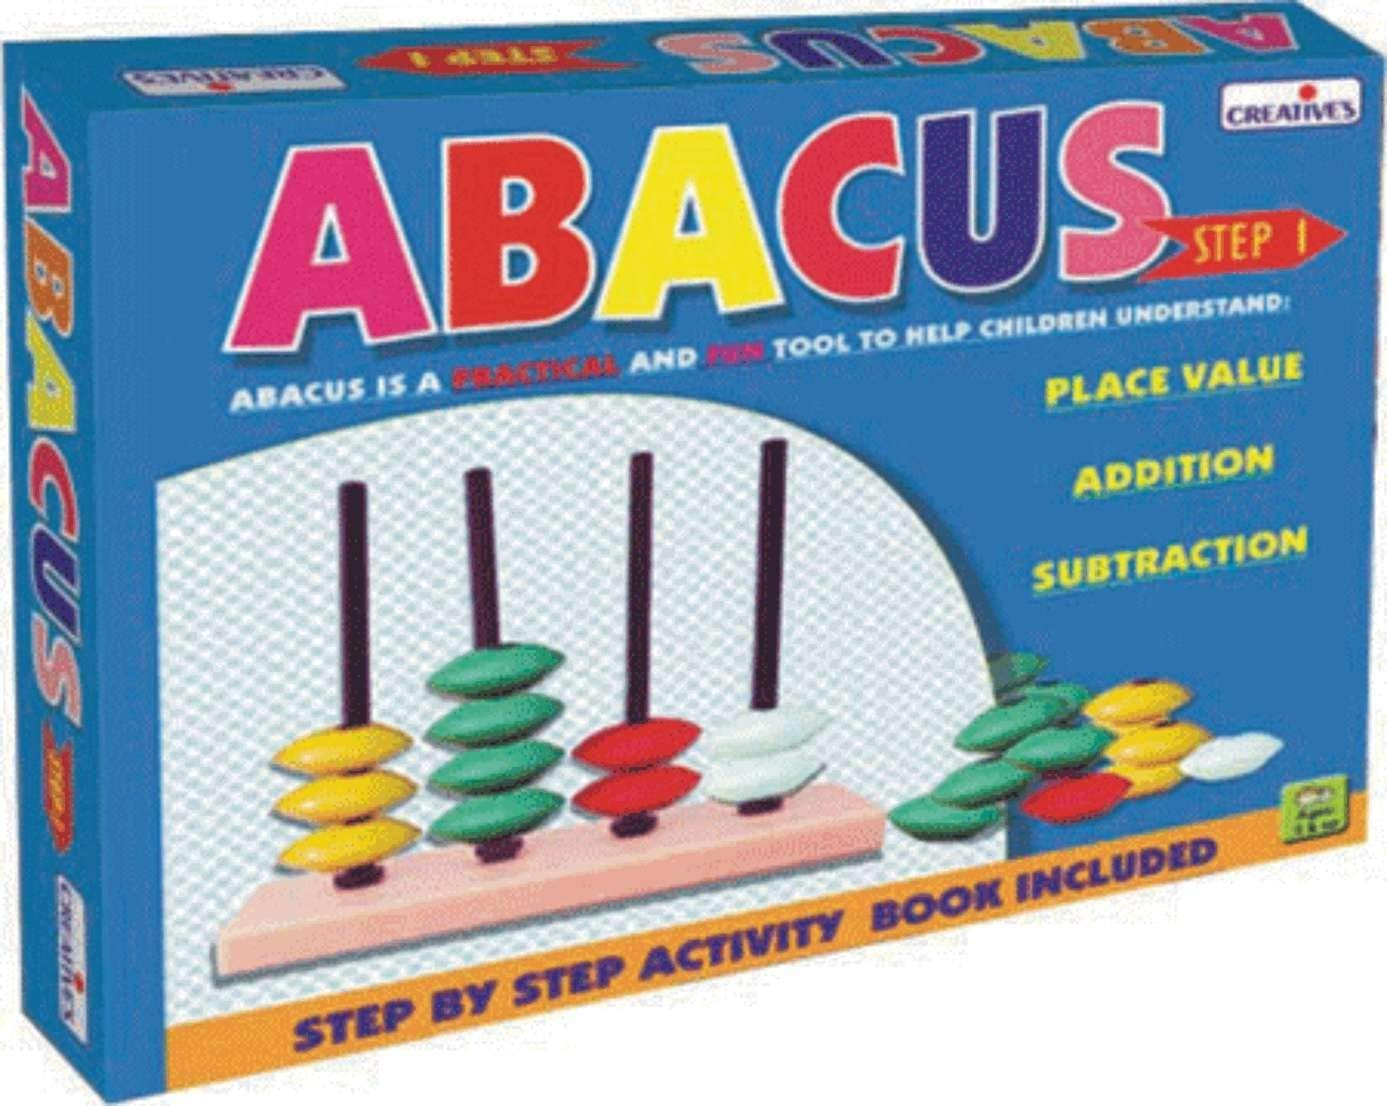 CREATIVE EDUCATIONAL Creative School Abacus-I CRE0950